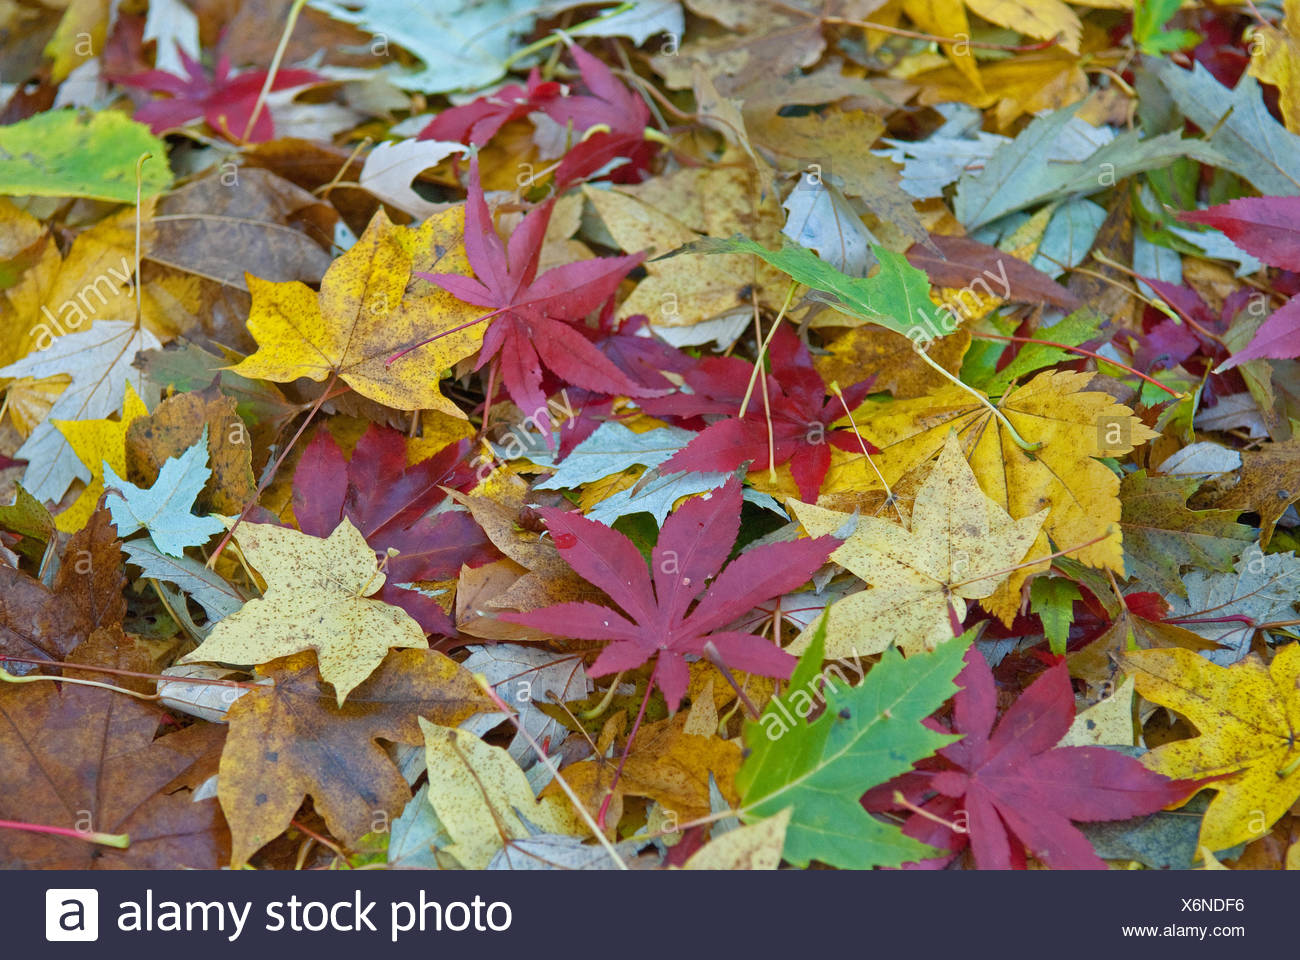 maple leaves of different species on the ground - Stock Image